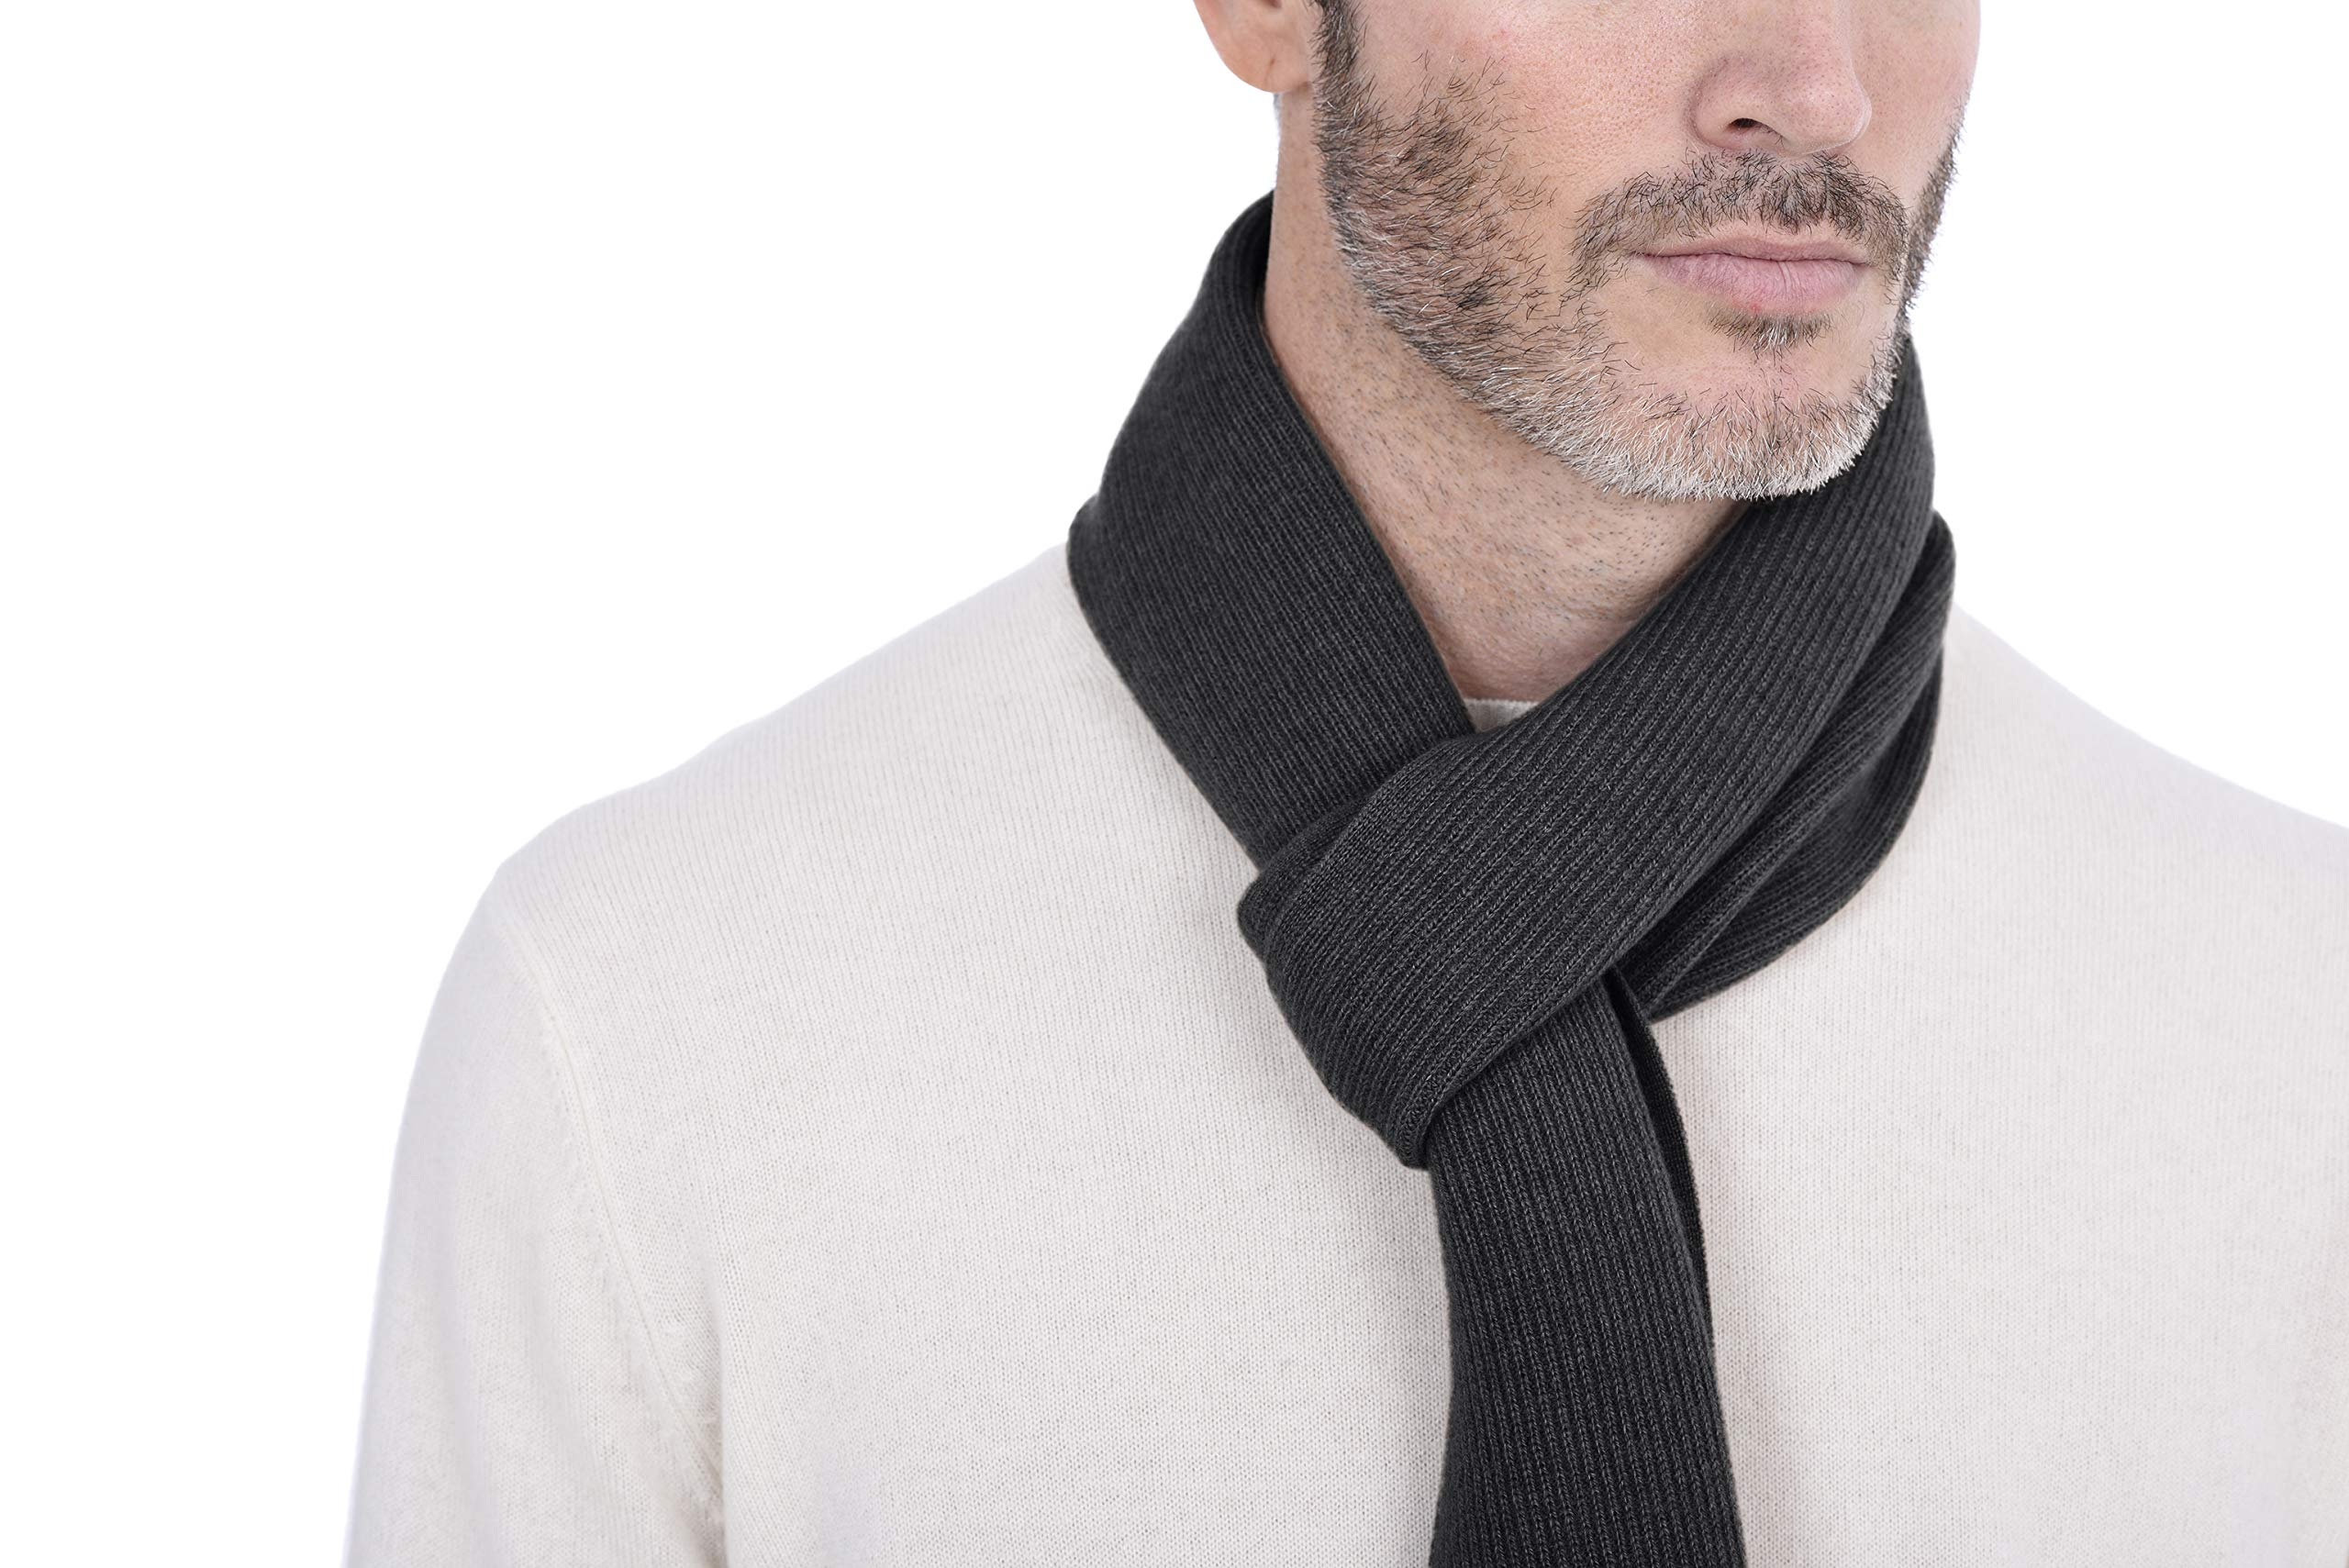 Cashmeren Men's 100% Cashmere Solid Color Winter Wrap Scarf, Ultimate Soft and Cozy 70'' x 7'' (Charcoal, One Size)